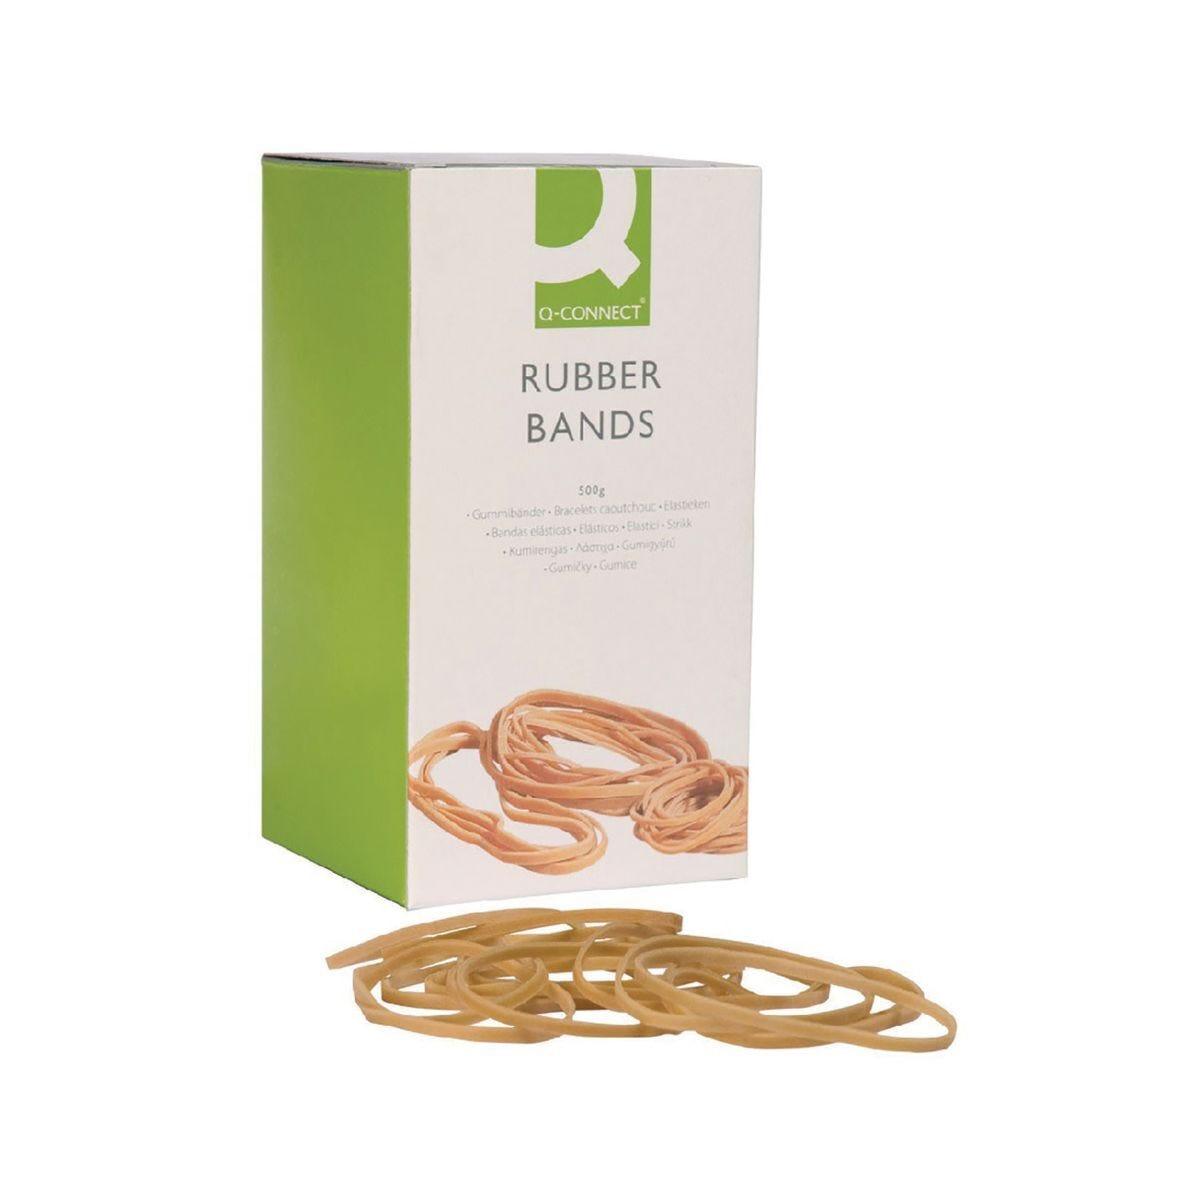 Q-Connect Rubber Bands Number 38 500g